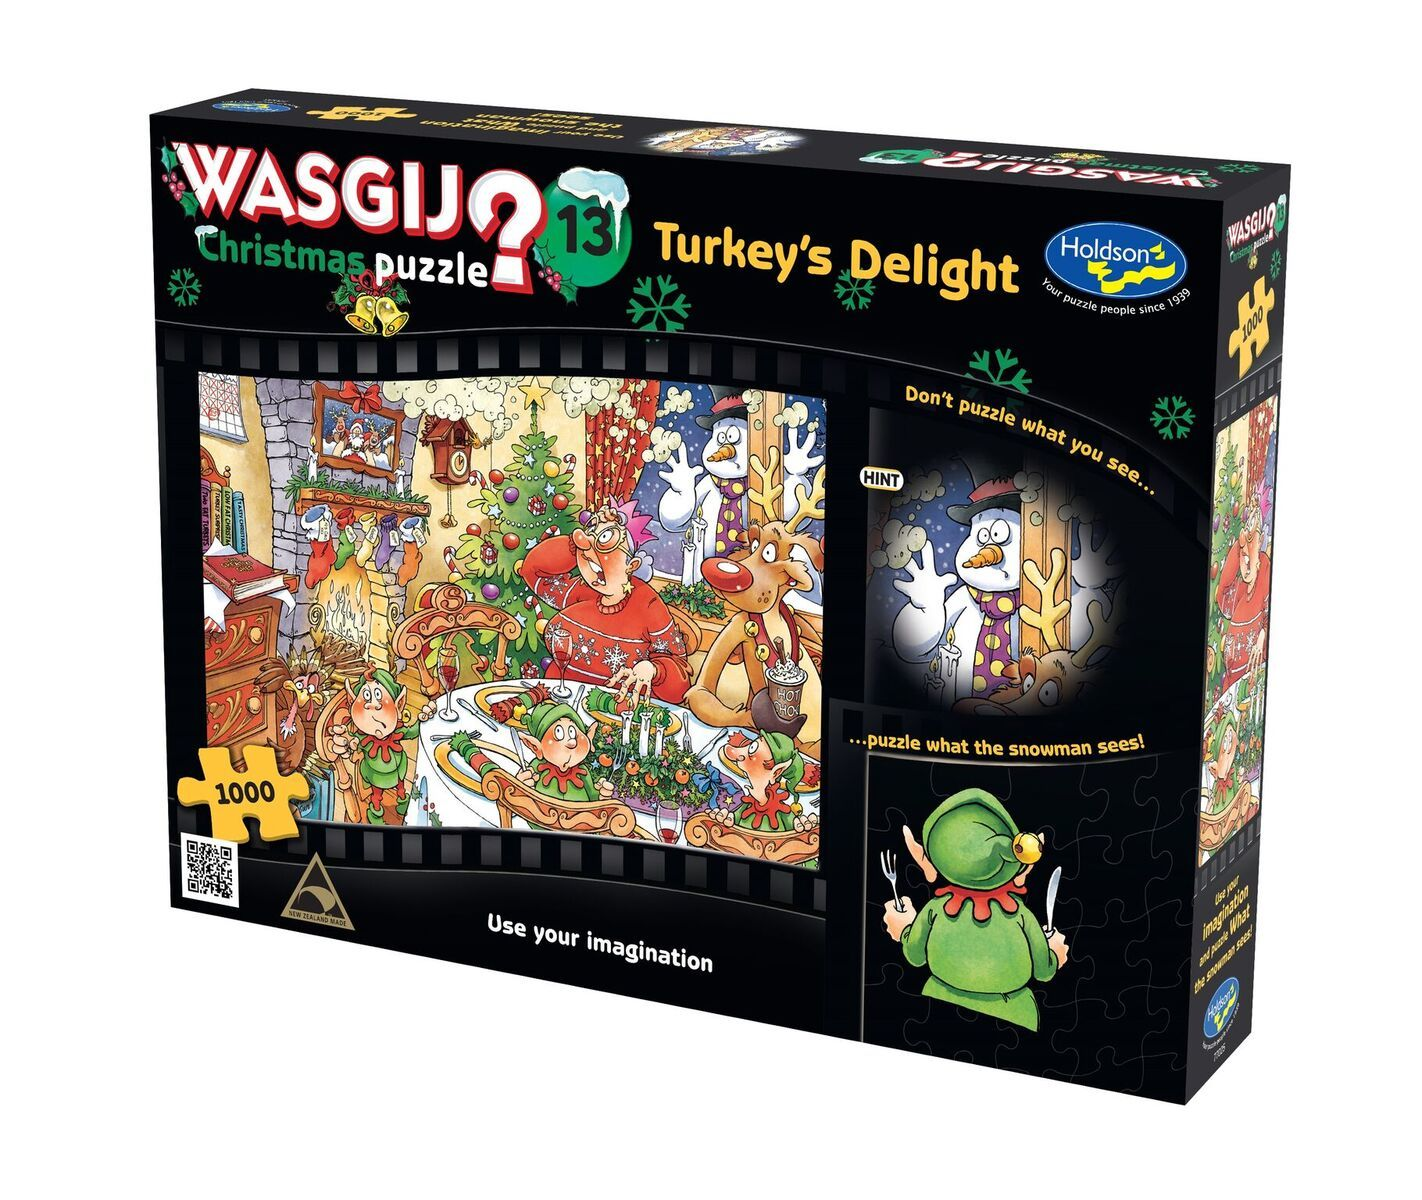 Wasgij: 1000 Piece Puzzle - Christmas (Turkey's Delight!) image